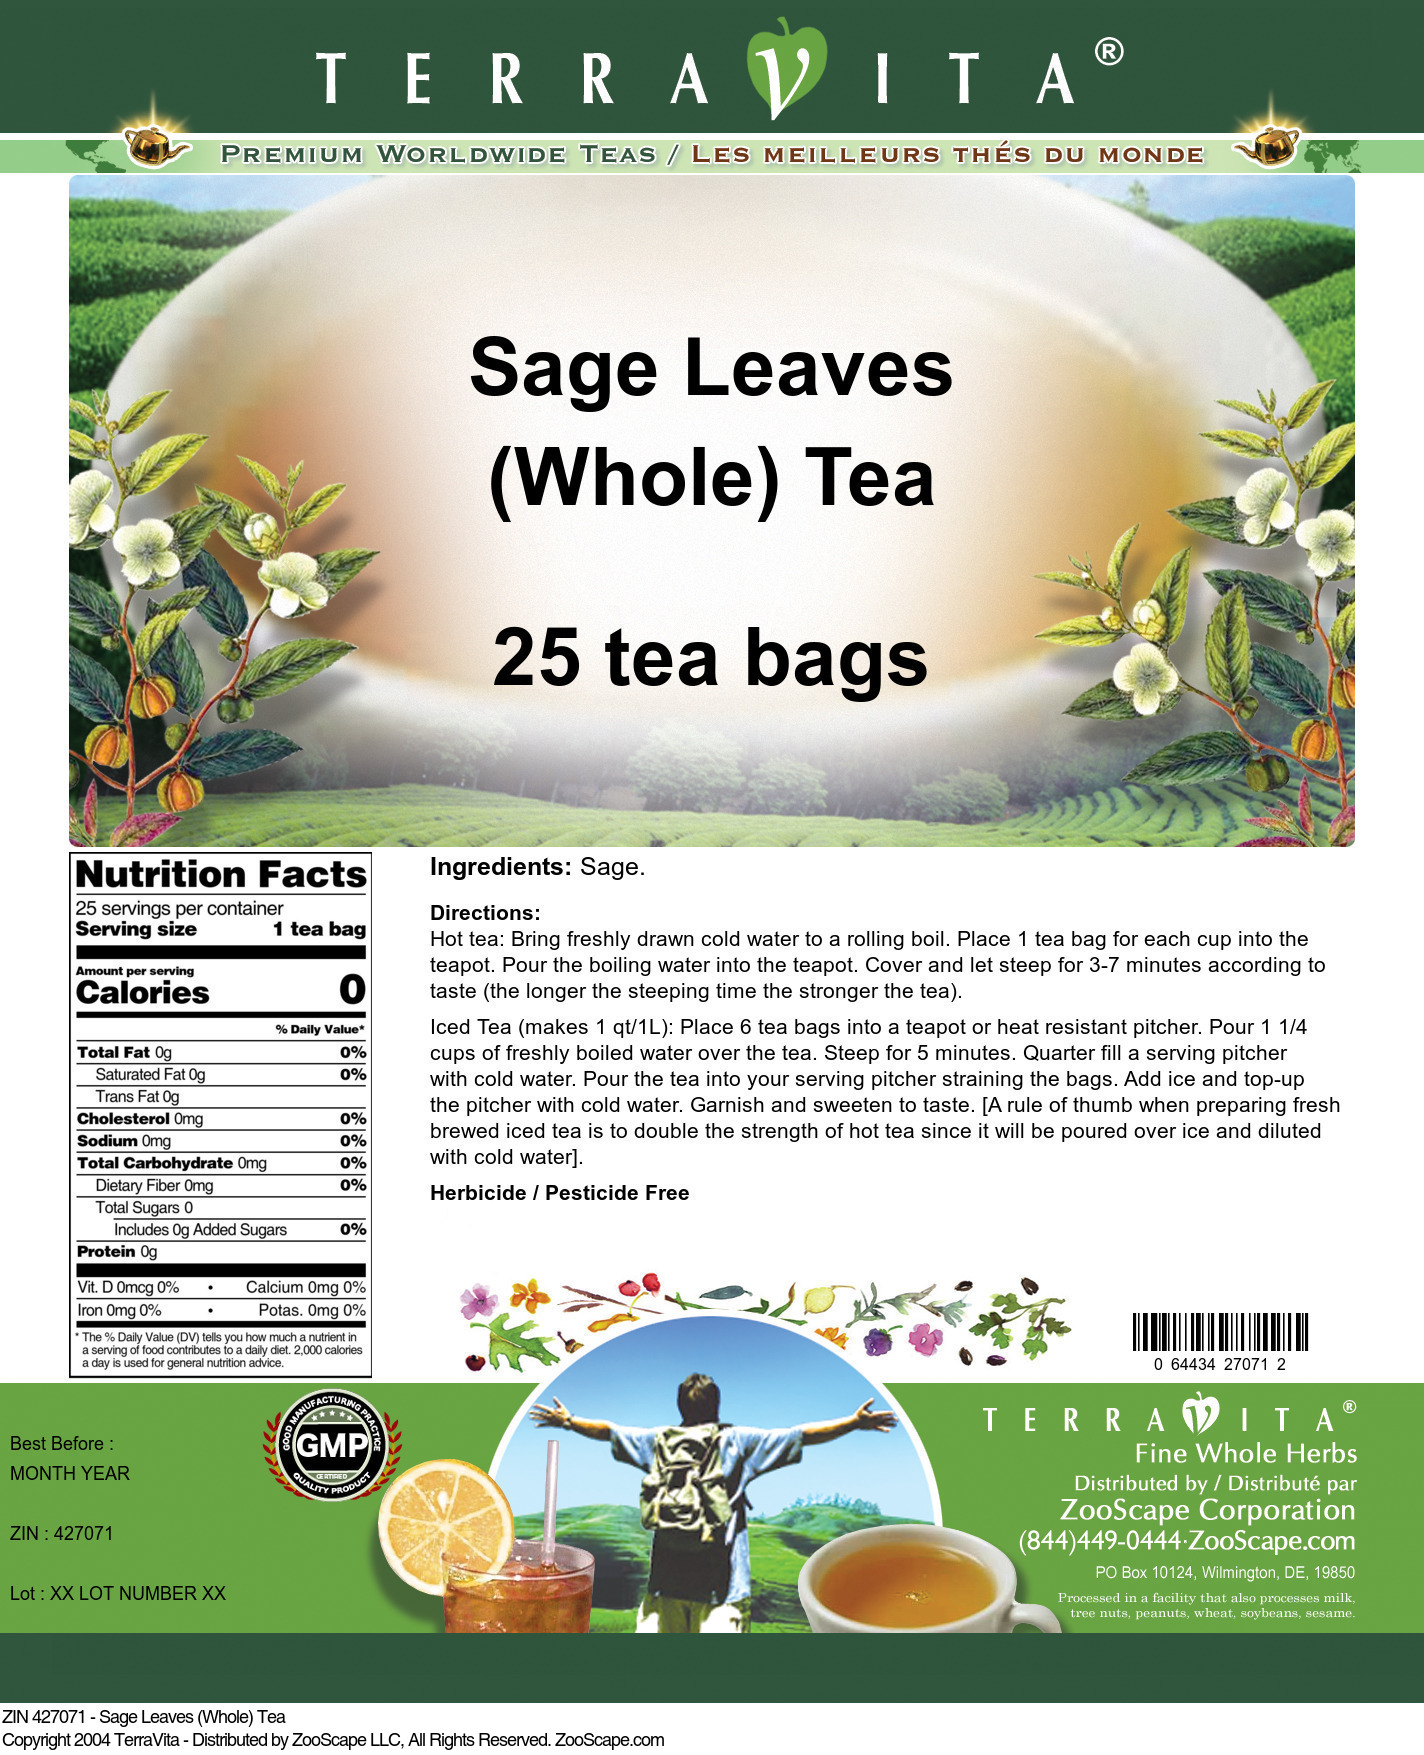 Sage Leaves (Whole) Tea - Label